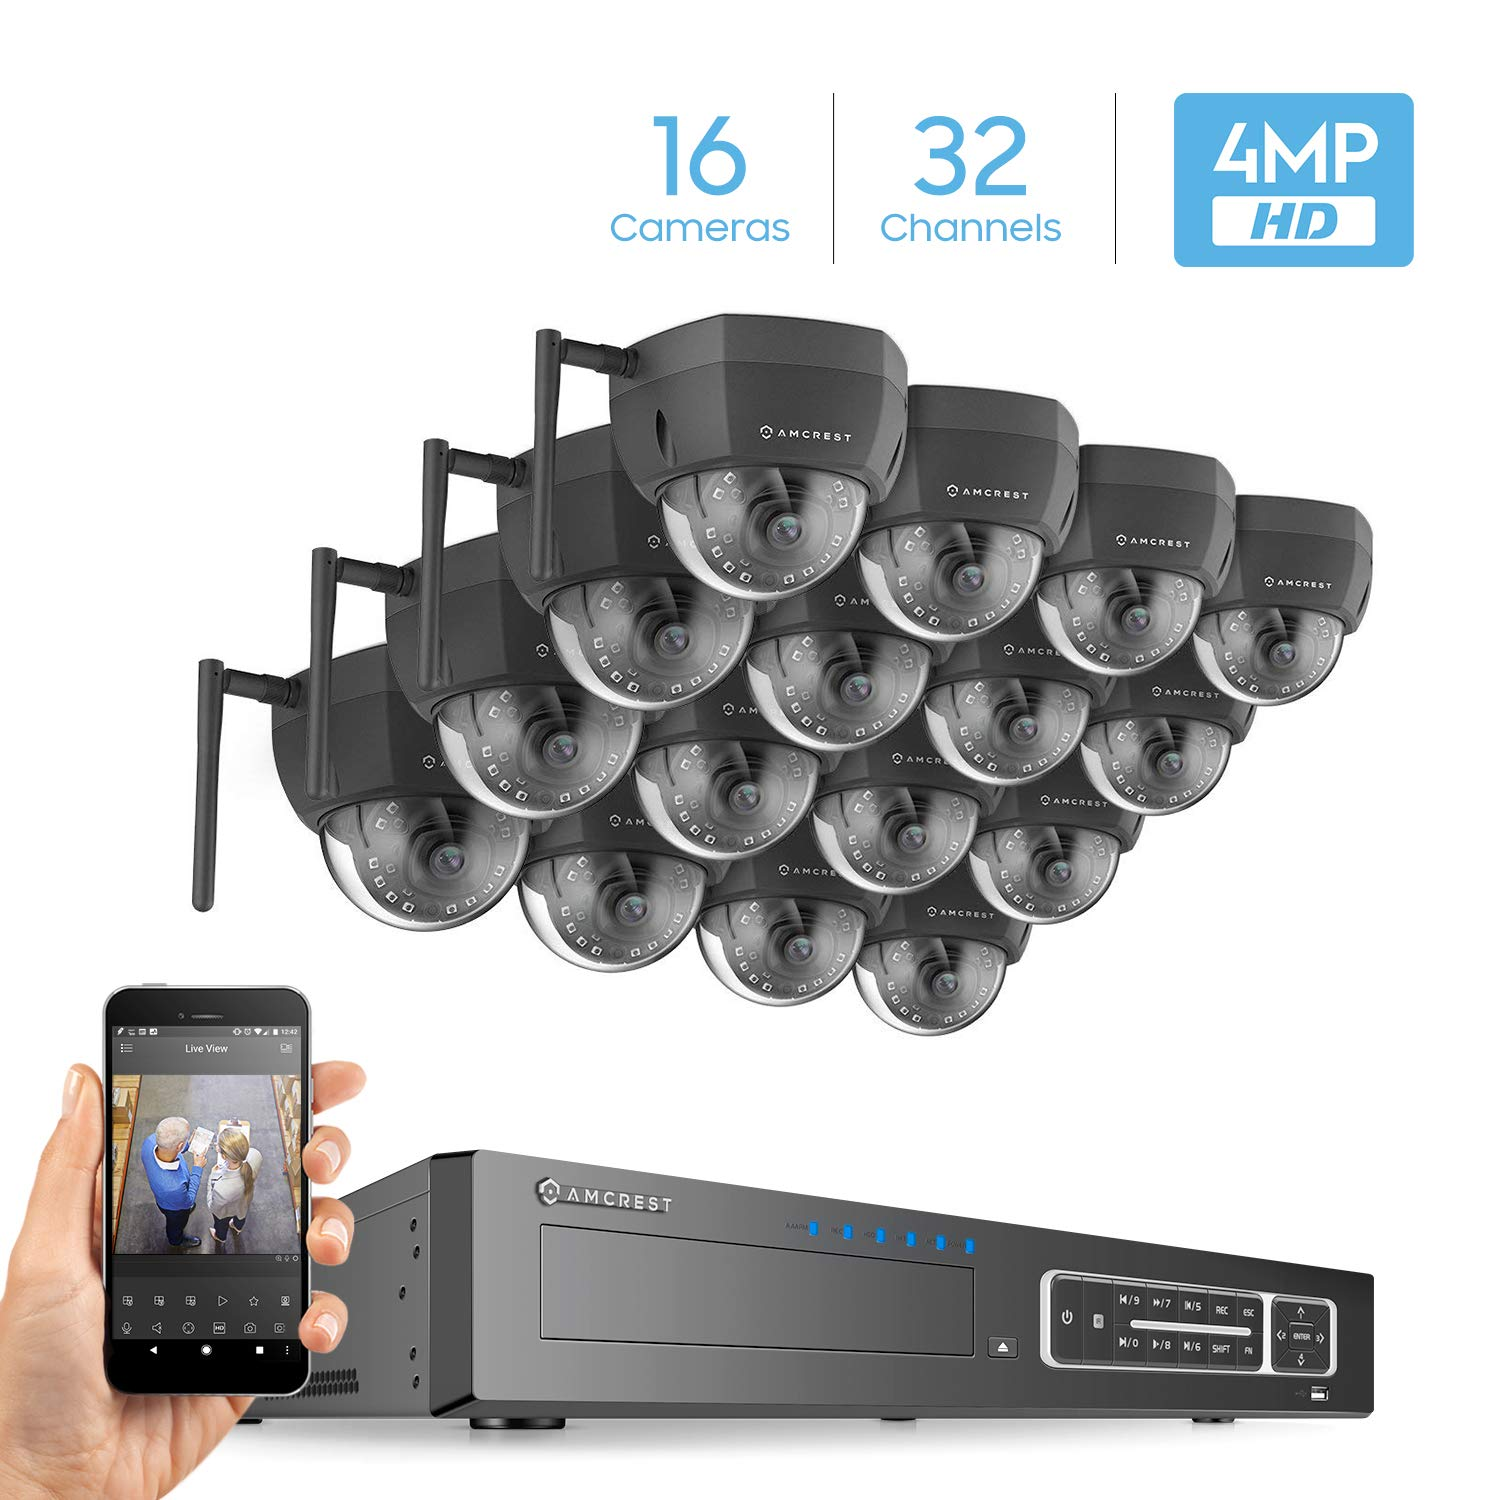 16 NV4432-HS-IP4M-1026W16 White Amcrest 32CH 4MP Security Camera System w// 4K NVR, x 4-Megapixel IP67 Weatherproof Bullet WiFi IP Cameras Hard Drive Not Included 3.6mm Angle Lens